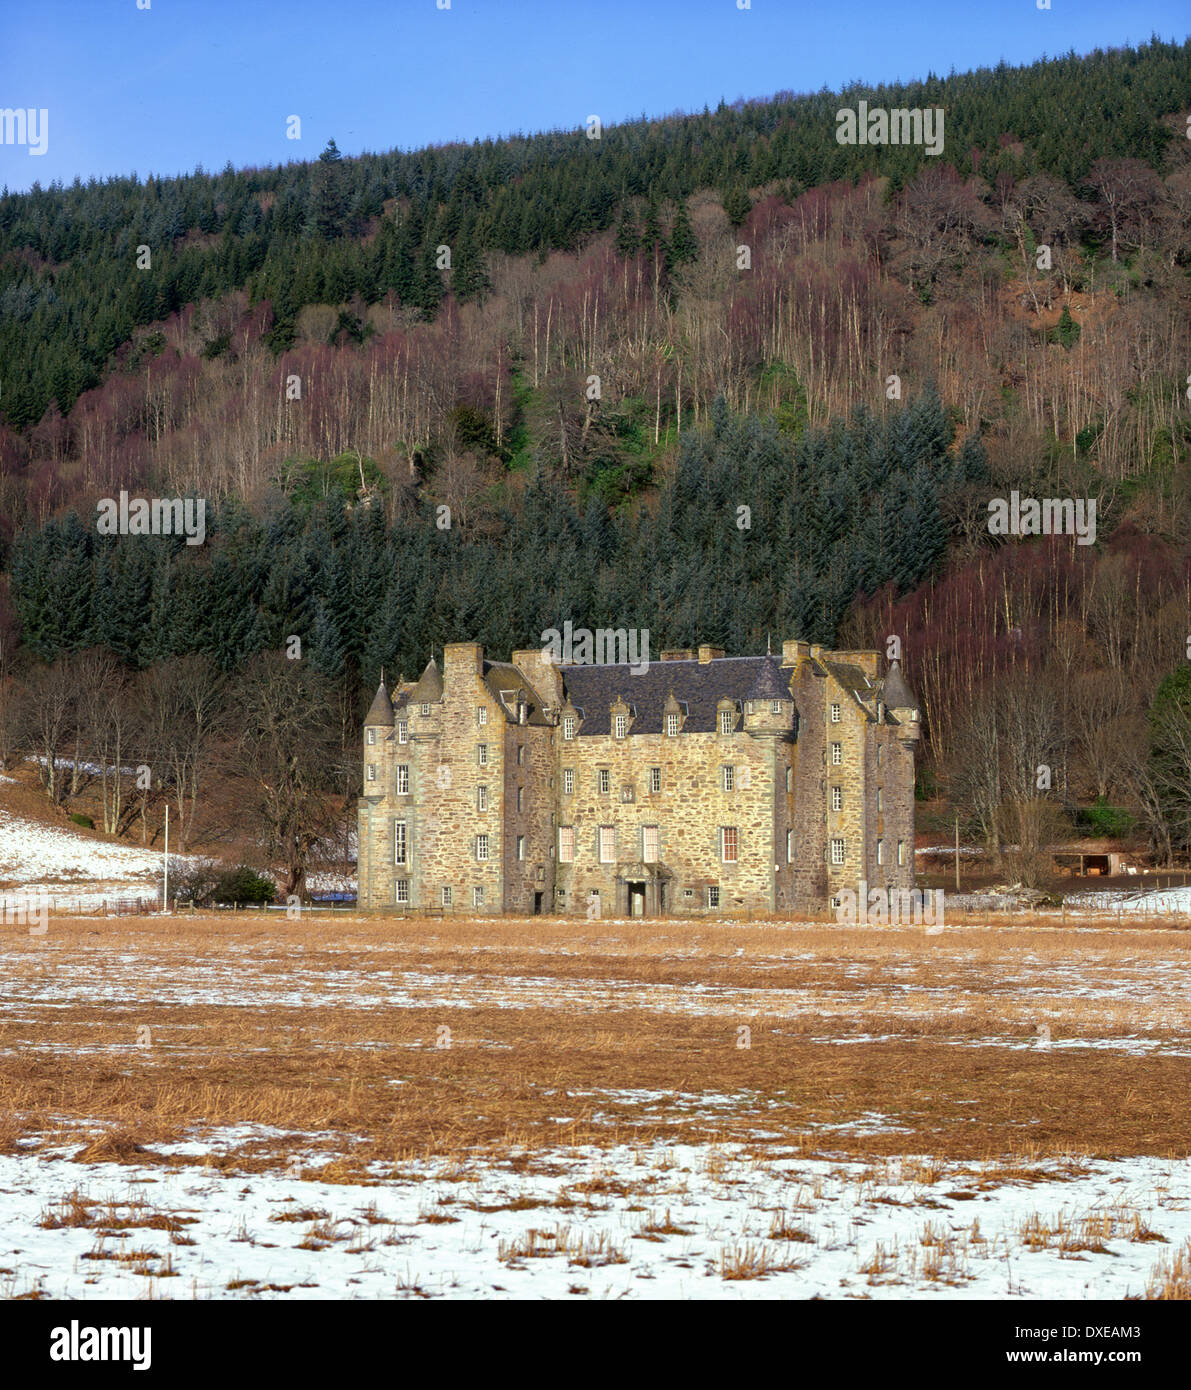 Castle Menzies, a 16th century castle in Weem near Aberfeldy, Perthshire.Clan Menzies. - Stock Image